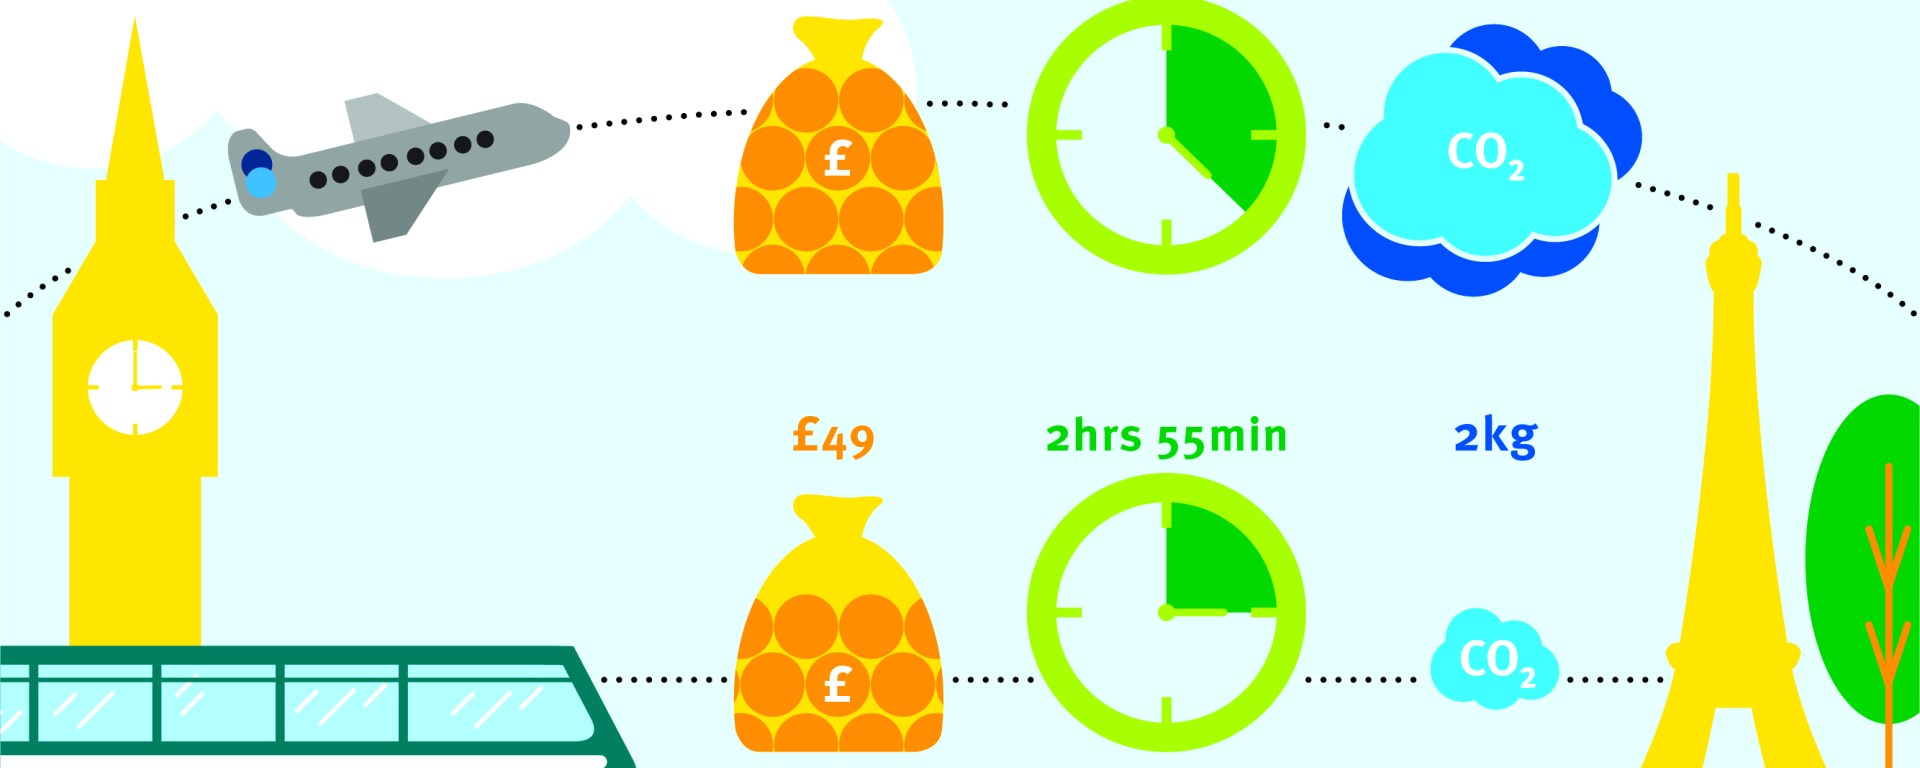 The graphic shows that a single journey from London to Paris by plane will cost £64, take 4 hours 40 minutes, and emit 59kg equivalent of carbon dioxide. By train, the same journey will cost £49, take 2 hours 55 minutes, and emit 2kg equivalent of carbon dioxide. Assumptions: the start and end location are the main train terminal in the centre of each city; travel costs are for the cheapest advance tickets bought in advance and include all connecting journeys; carbon emissions are calculated using UK government greenhouse gas emissions factors for short-haul flights, ferry and international rail travel. To find out more, visit www.imperial.ac.uk/stories/climate-action